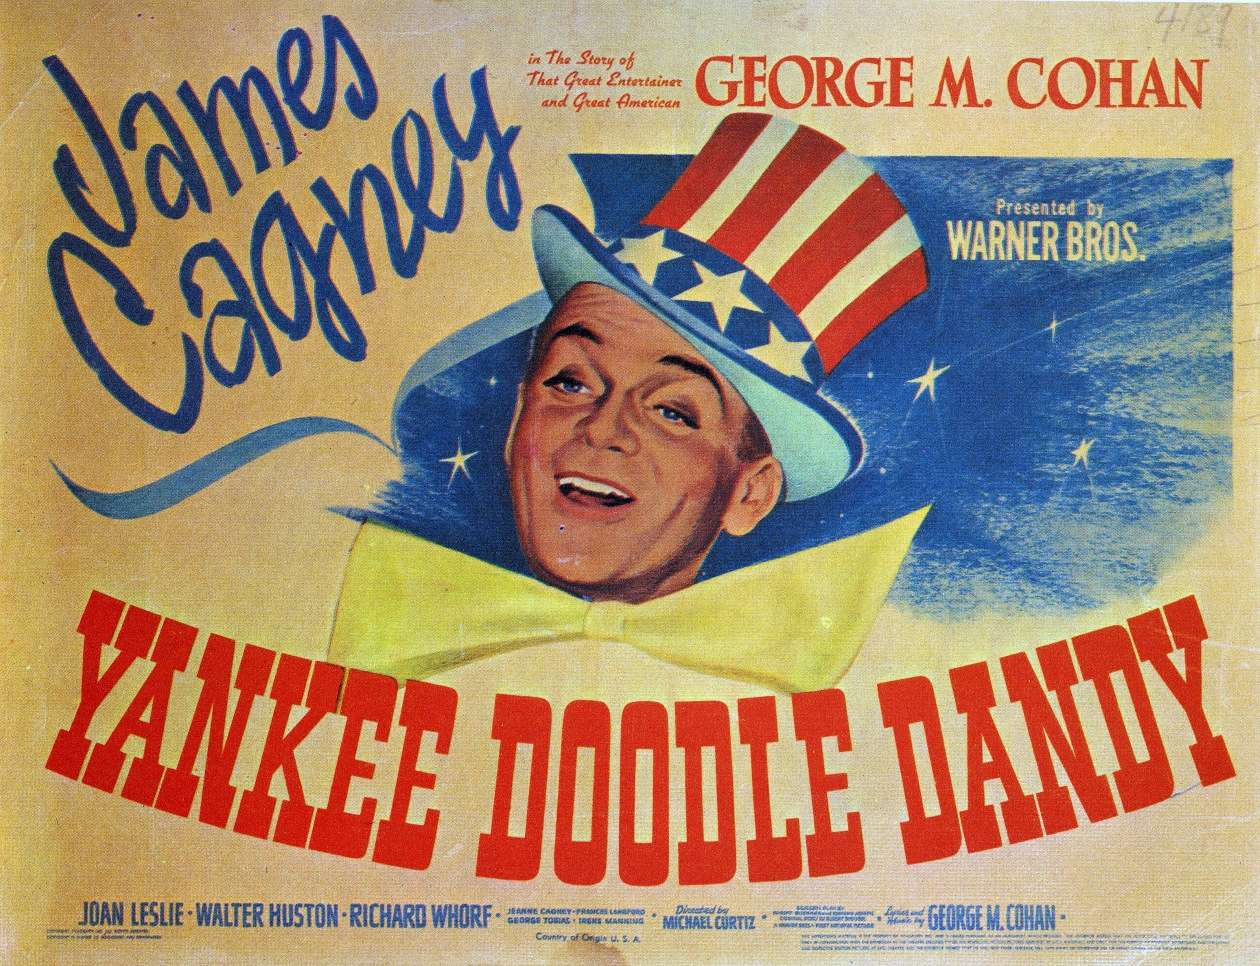 James Cagney starring as George M. Cohan.